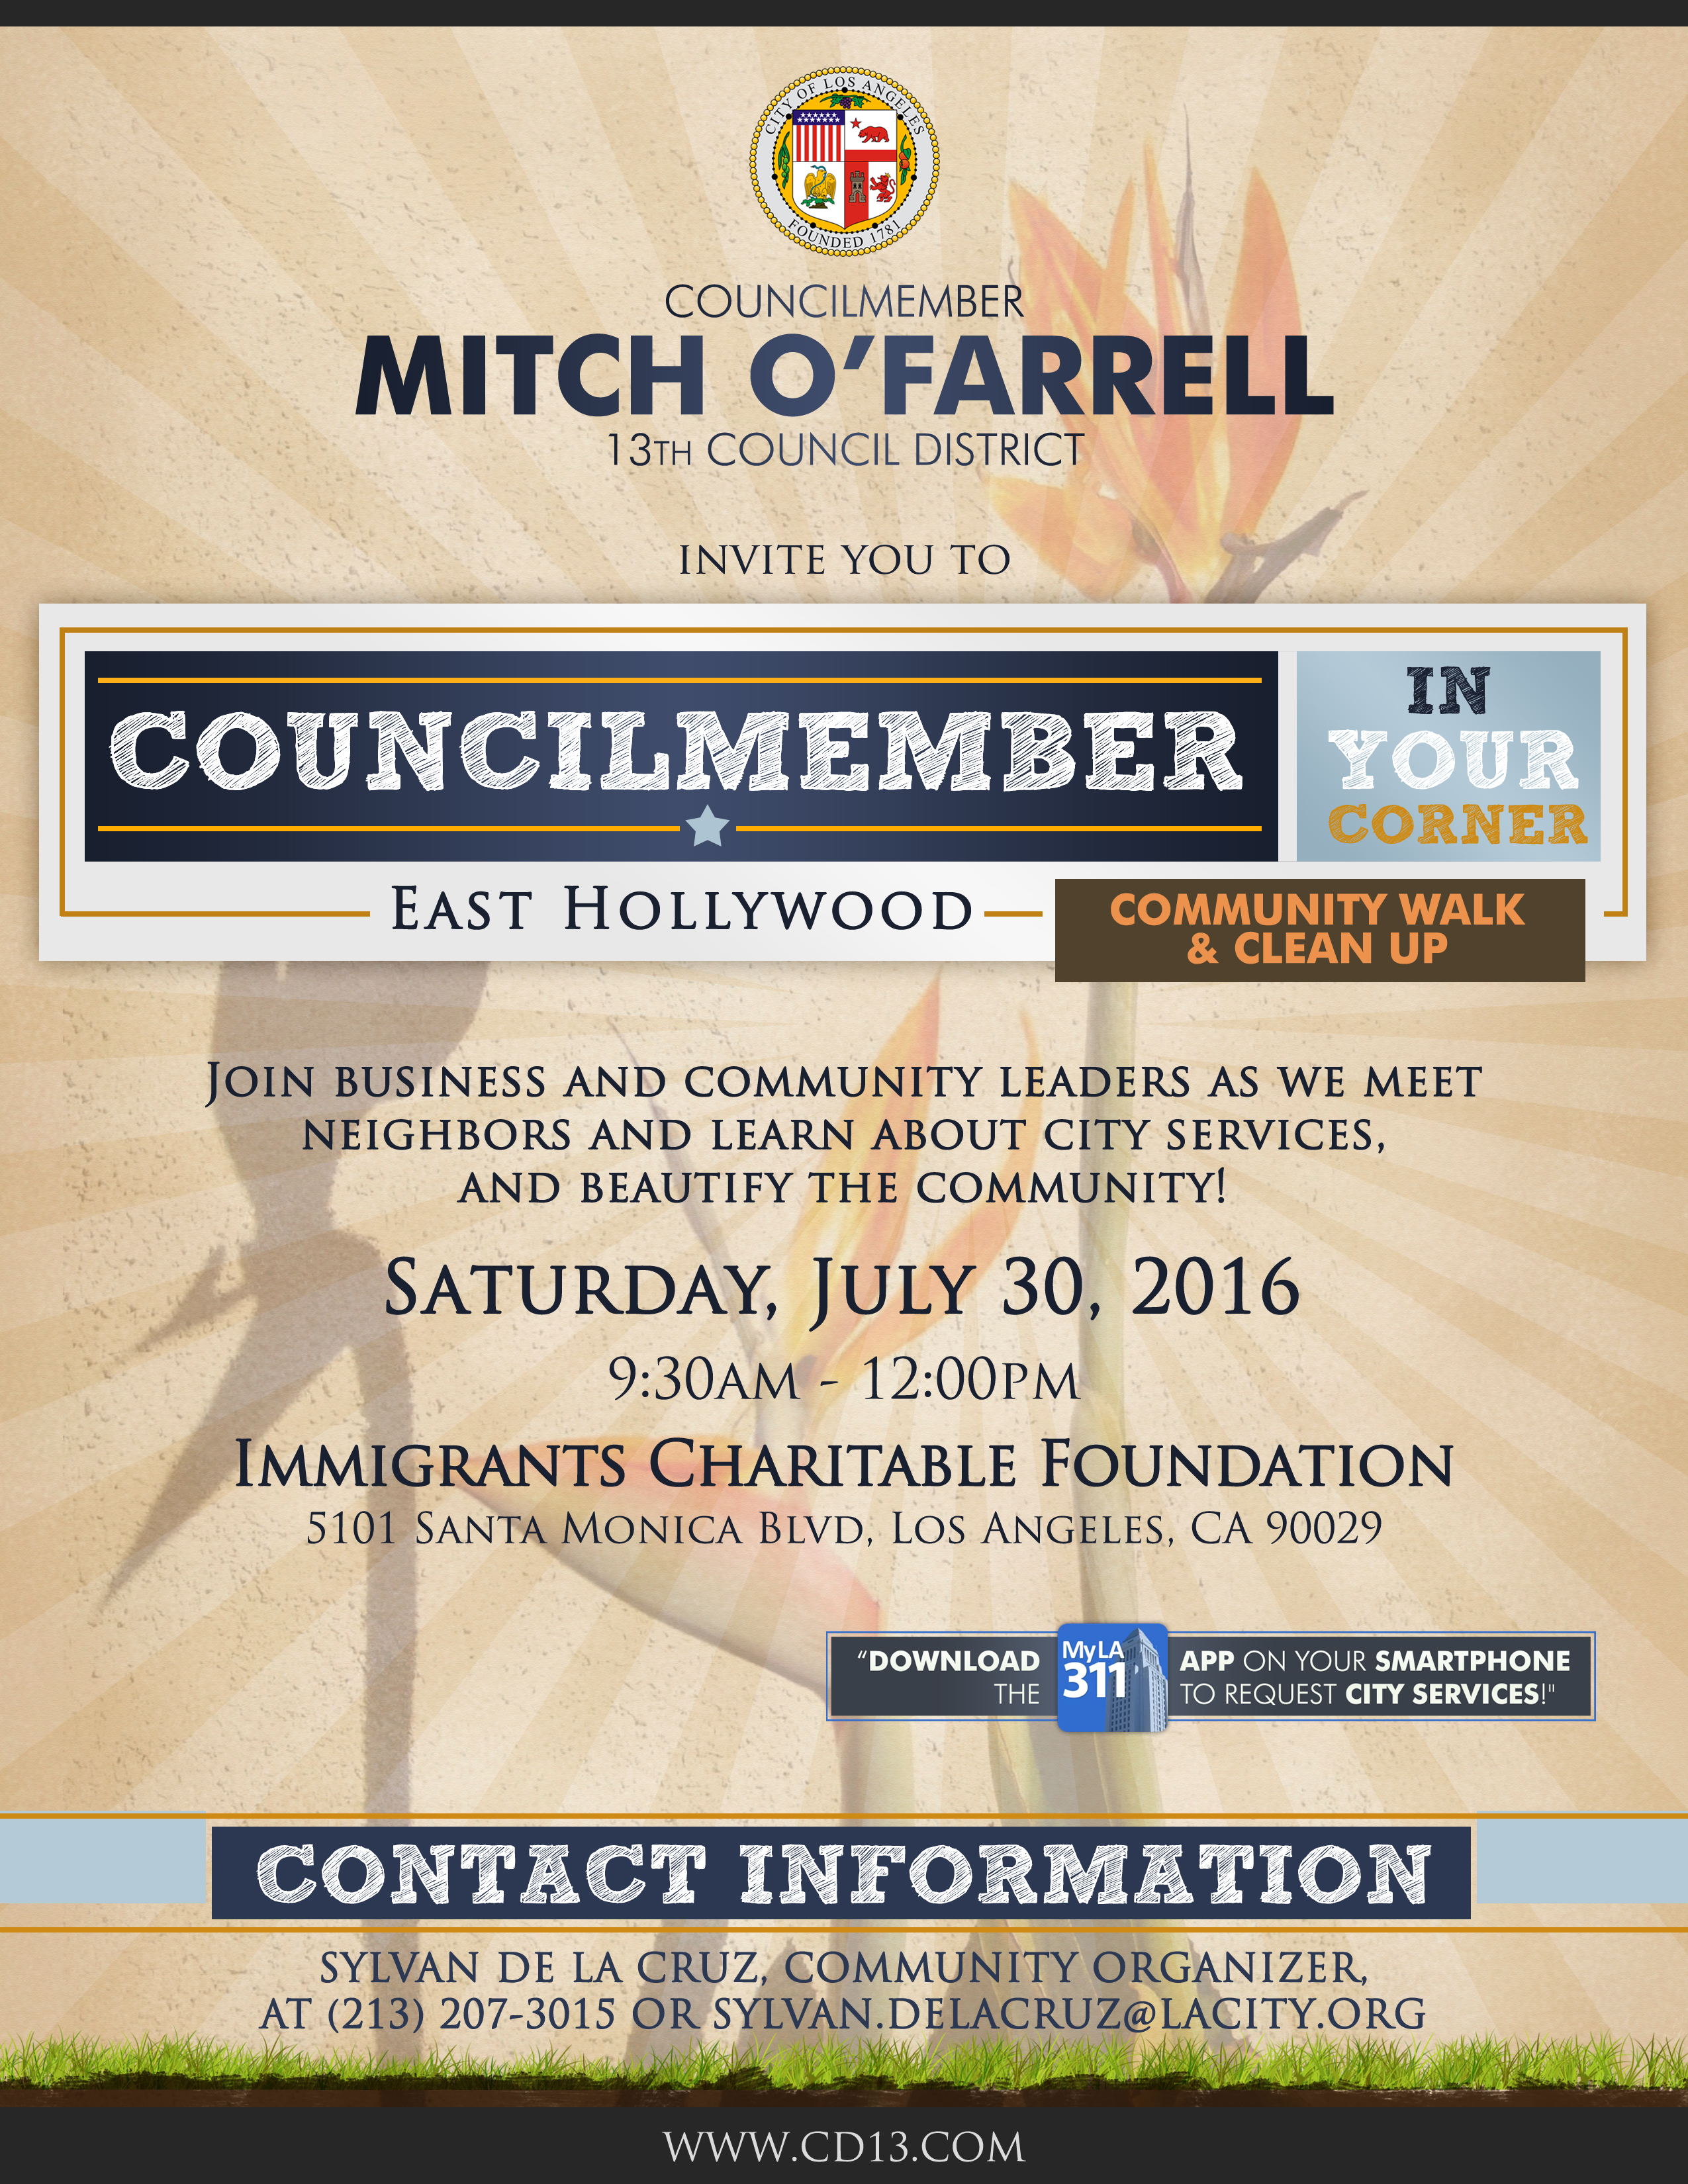 Councilmember_In_Your_Corner_(July_2016).jpg